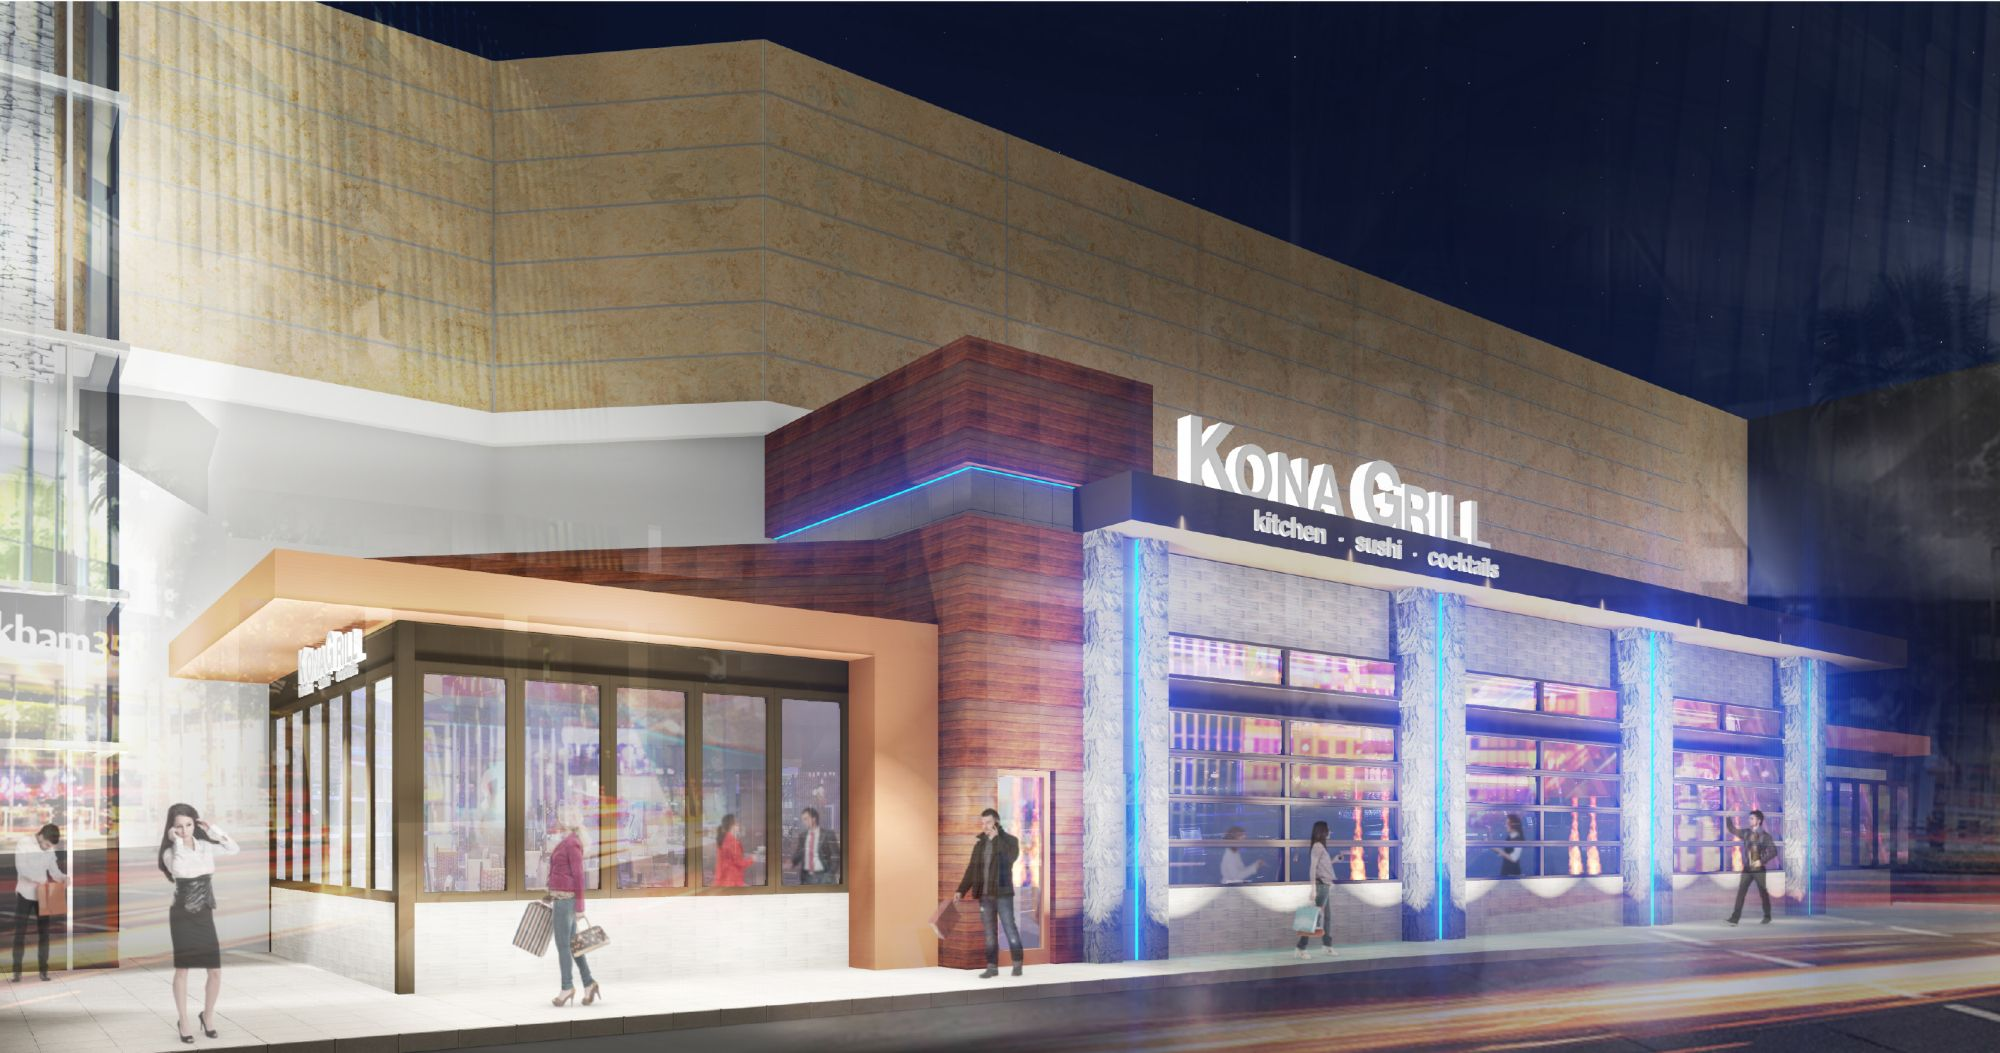 Check out this design for a new KonaGrill location by